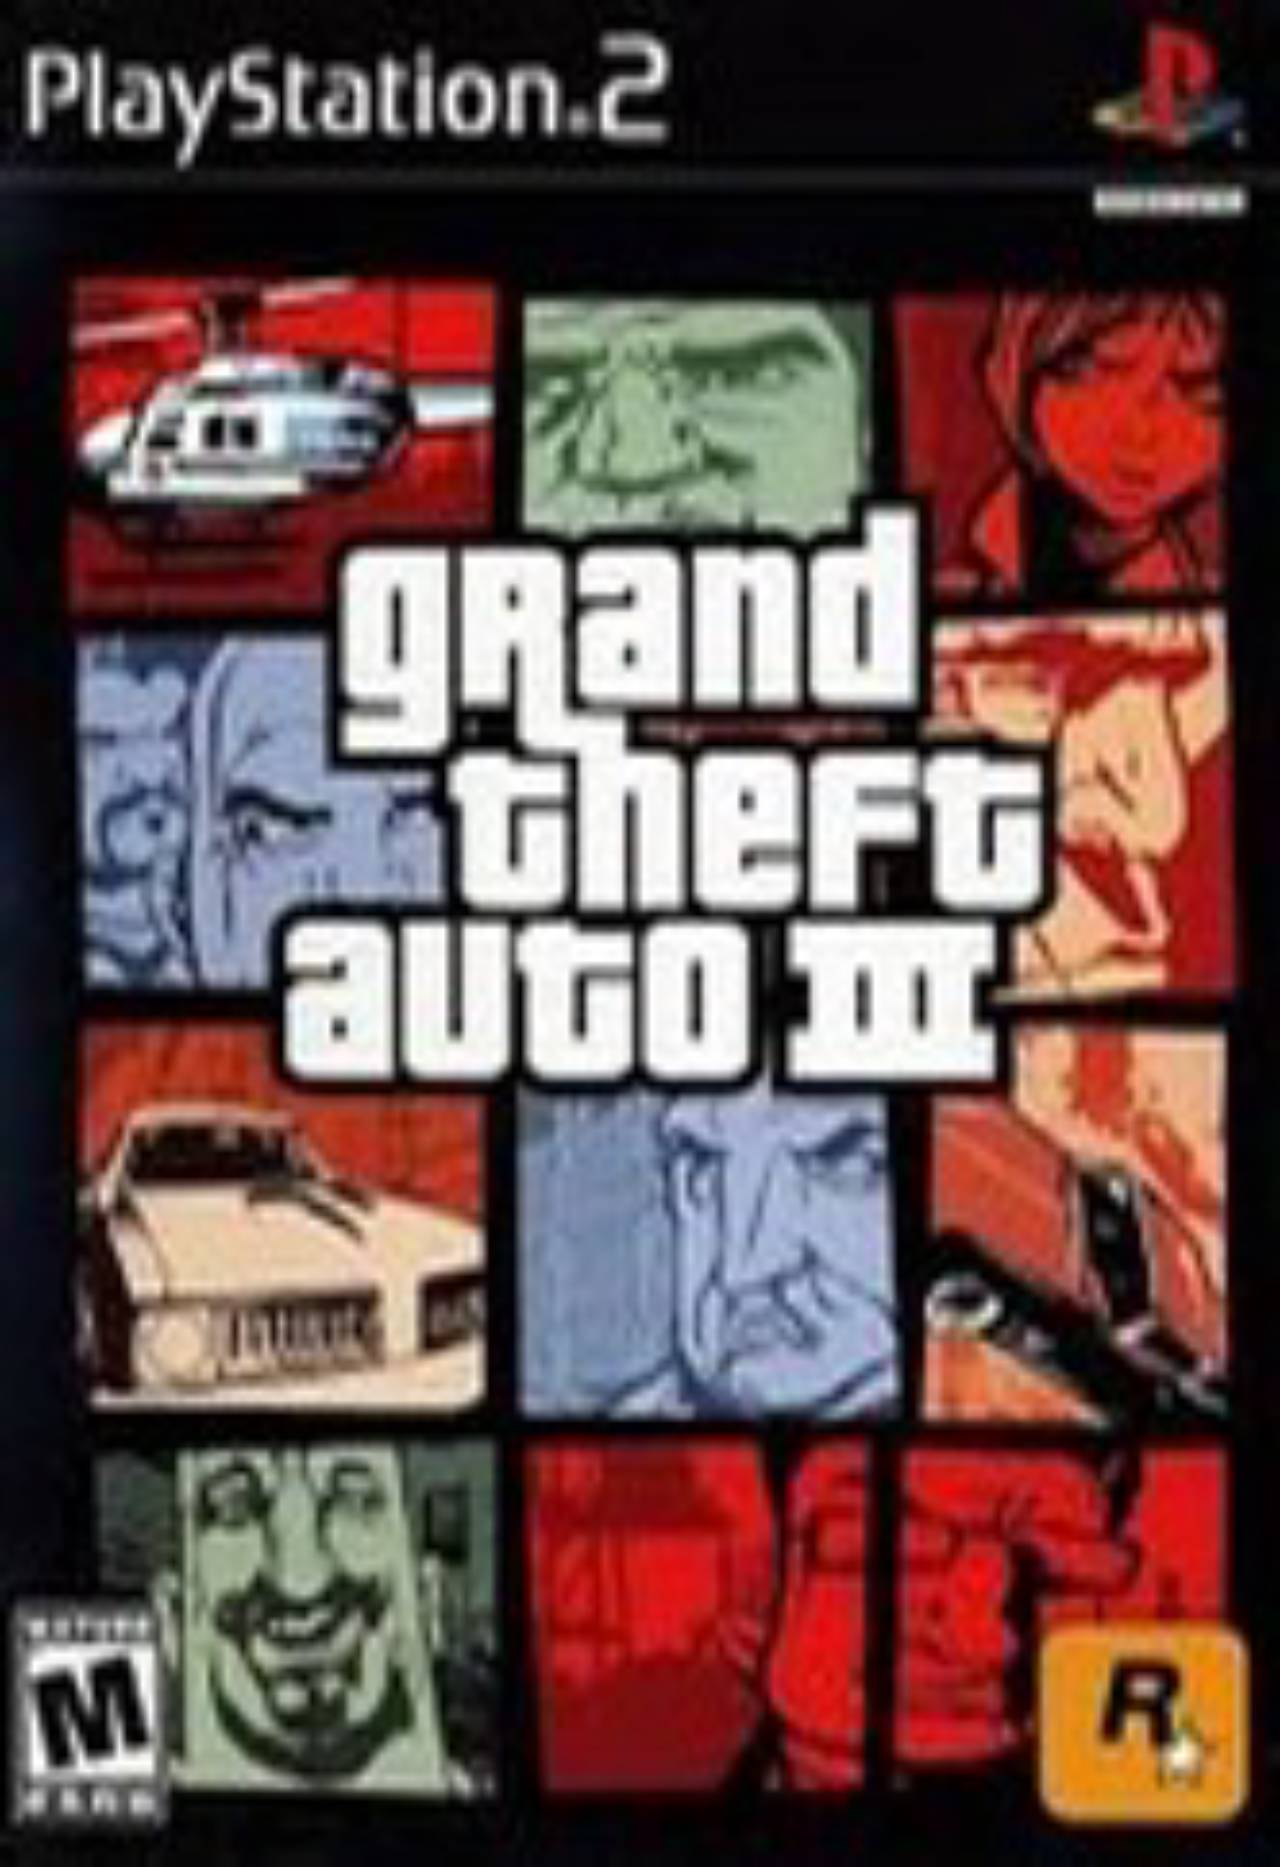 grand theft auto 3 - ps2 (usado) em Tietê, SP por IT Computadores, Games Celulares